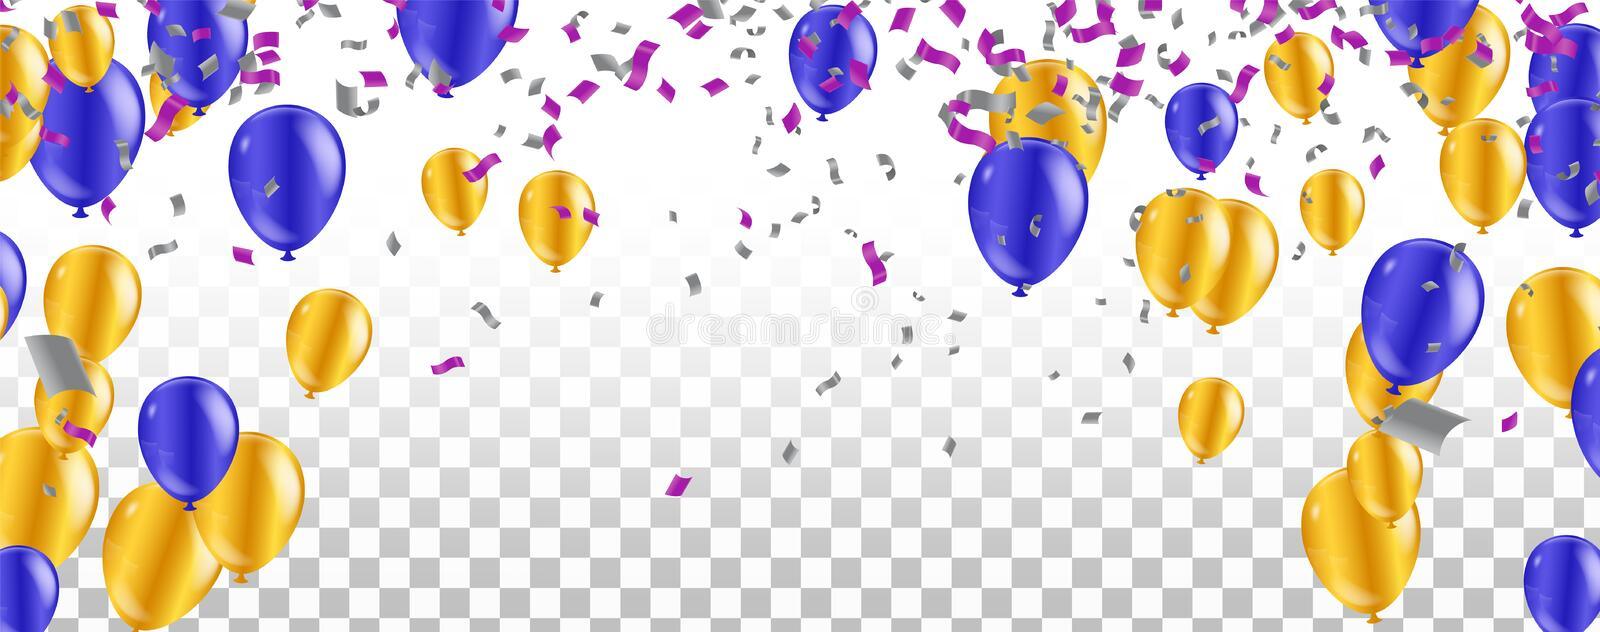 Color glossy balloons party confetti concept design template happy New Year 2020 background Celebration Vector illustration royalty free illustration